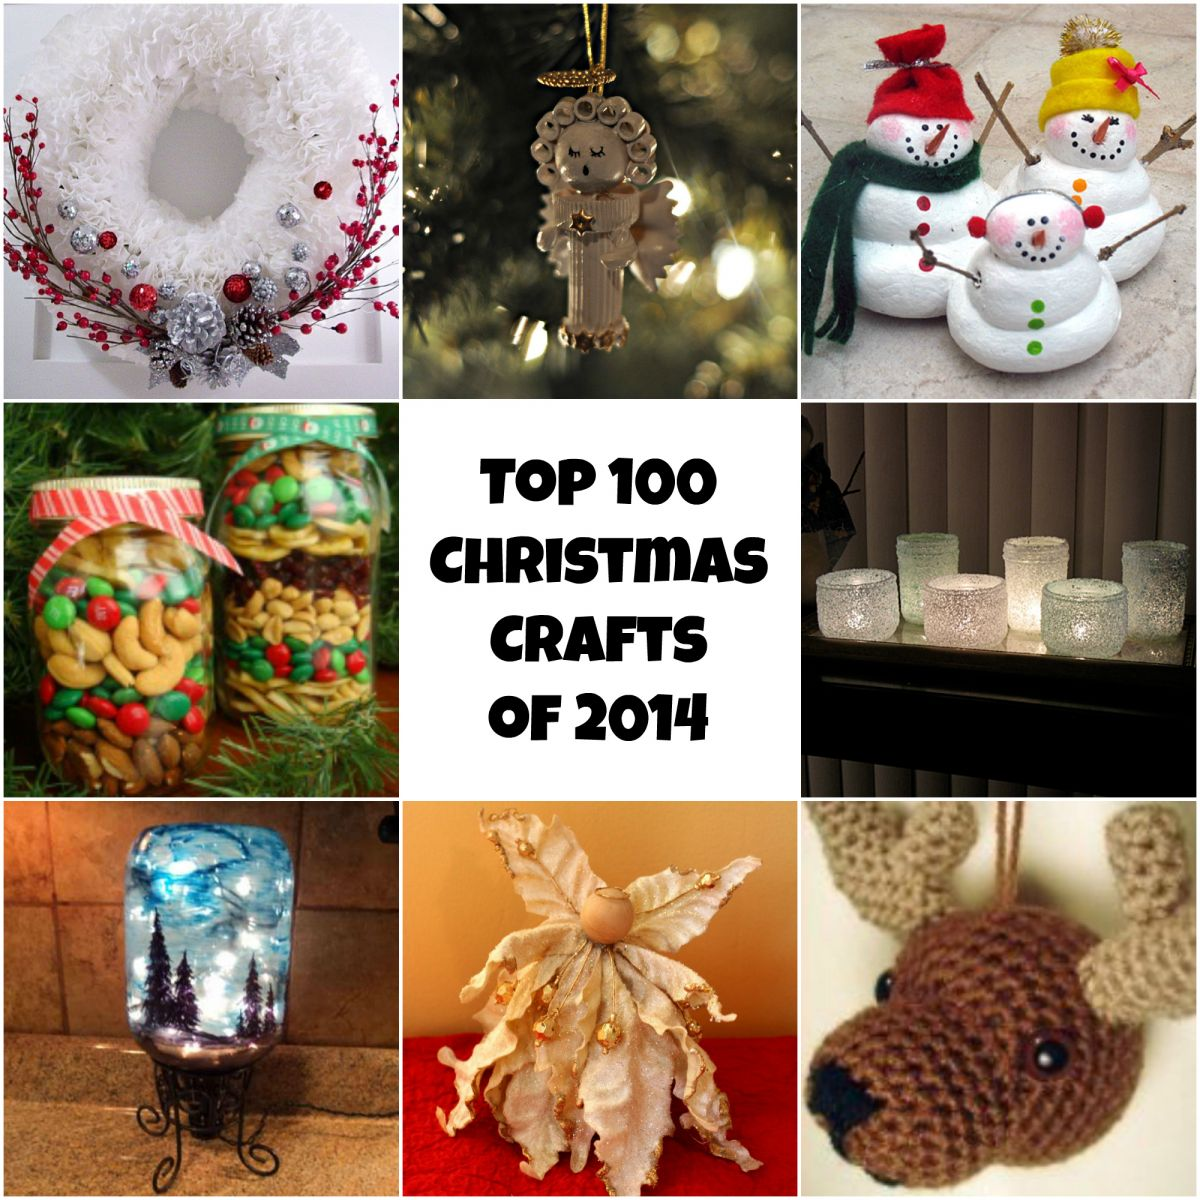 Top 100 DIY Christmas Crafts of 2014: Homemade Christmas Ornaments ...